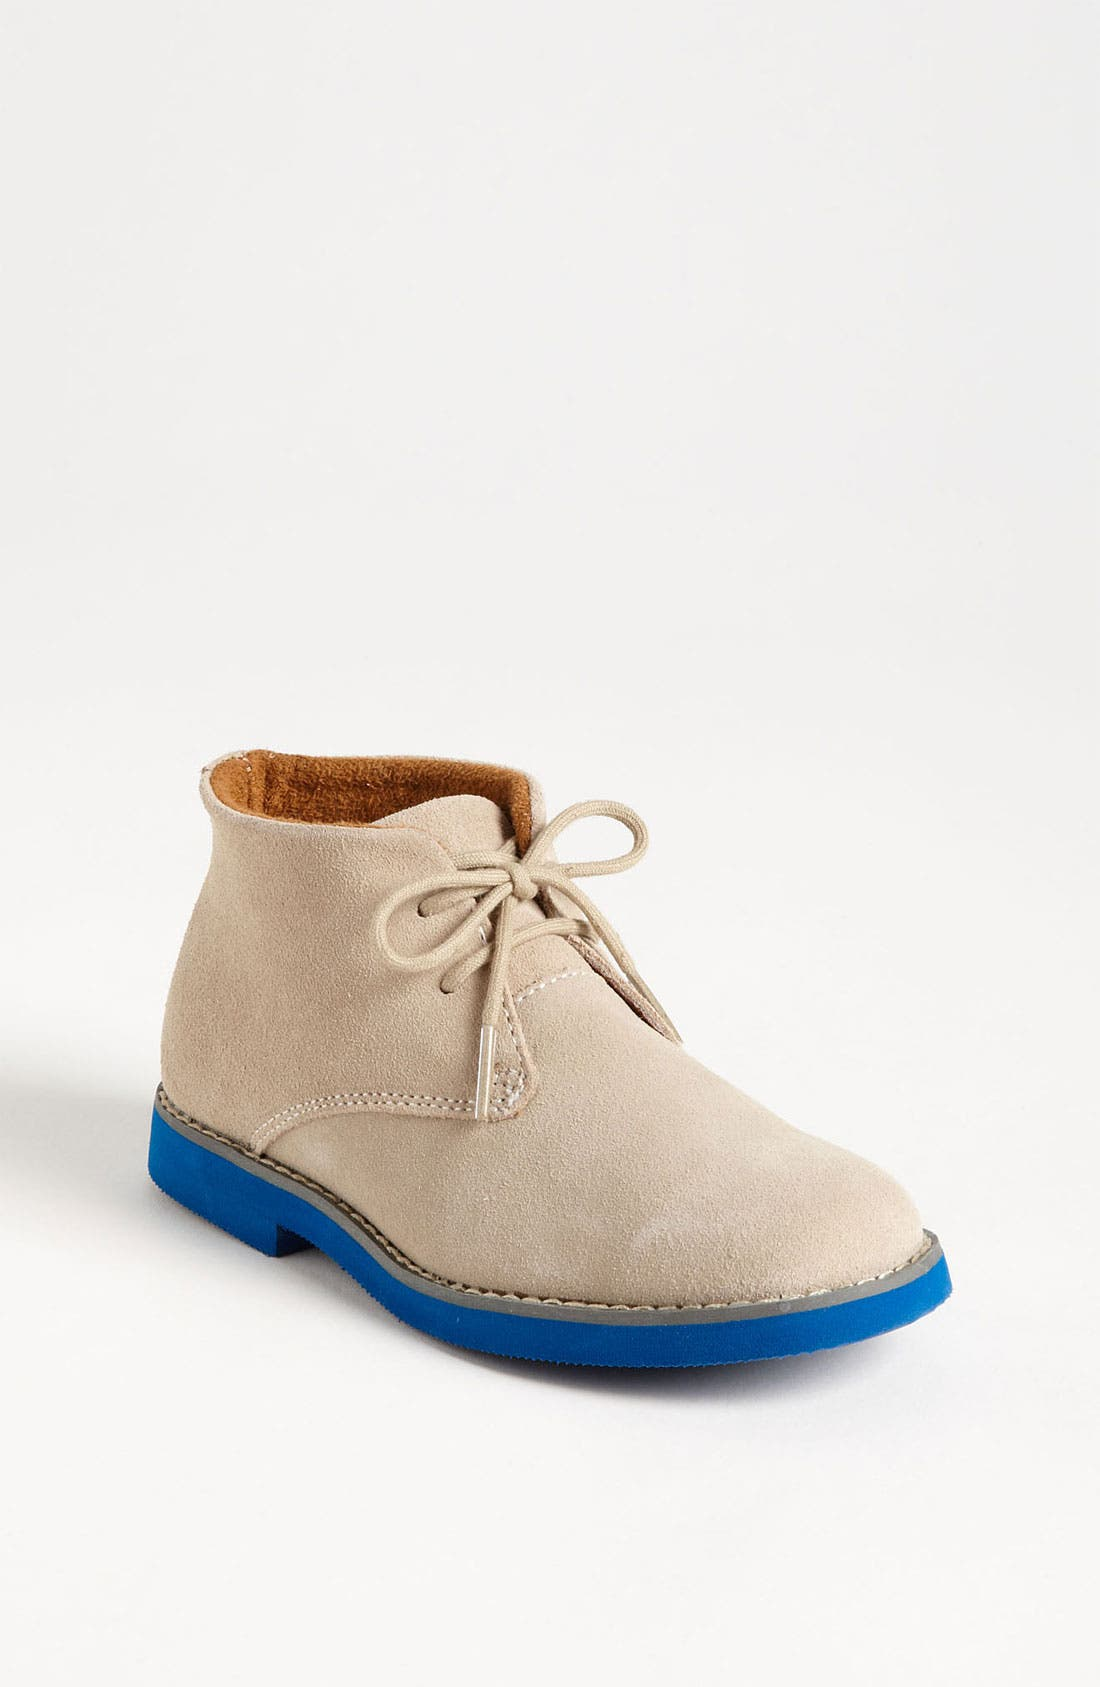 Alternate Image 1 Selected - Florsheim 'Quinlan Jr.' Chukka Boot (Toddler, Little Kid & Big Kid)